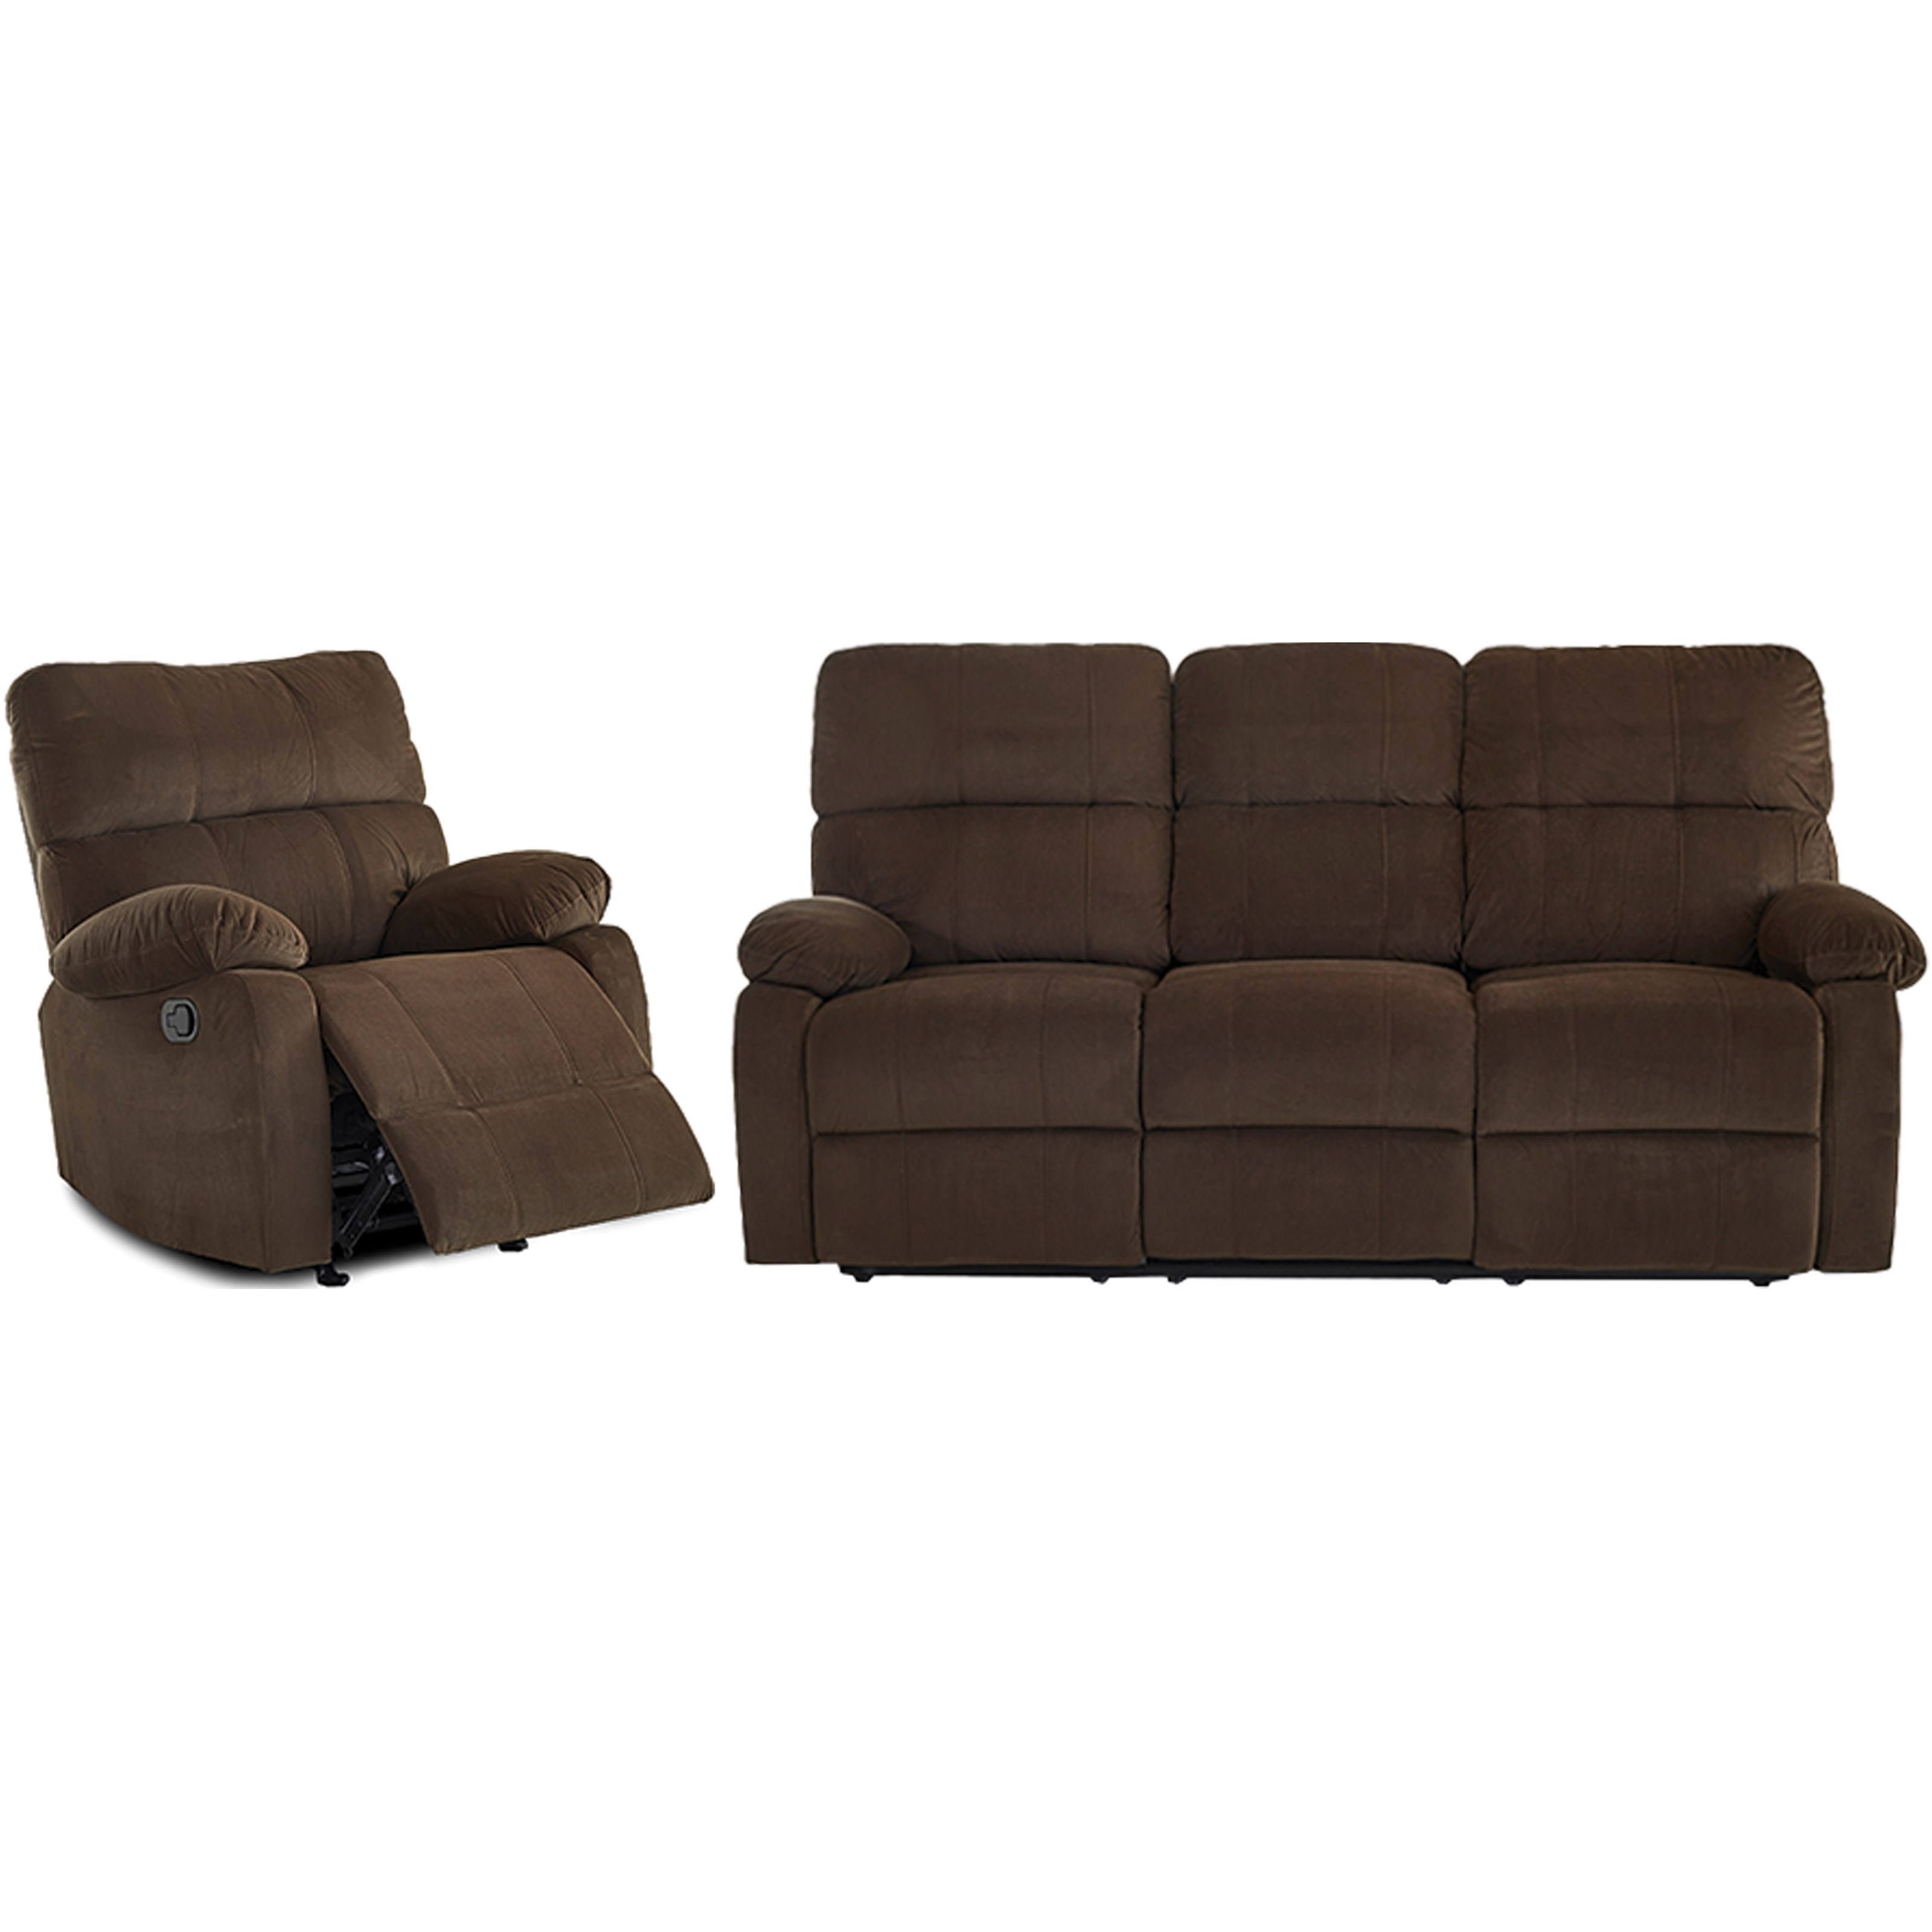 Camargo-US Reclining Living Room Group by Klaussner International at Northeast Factory Direct